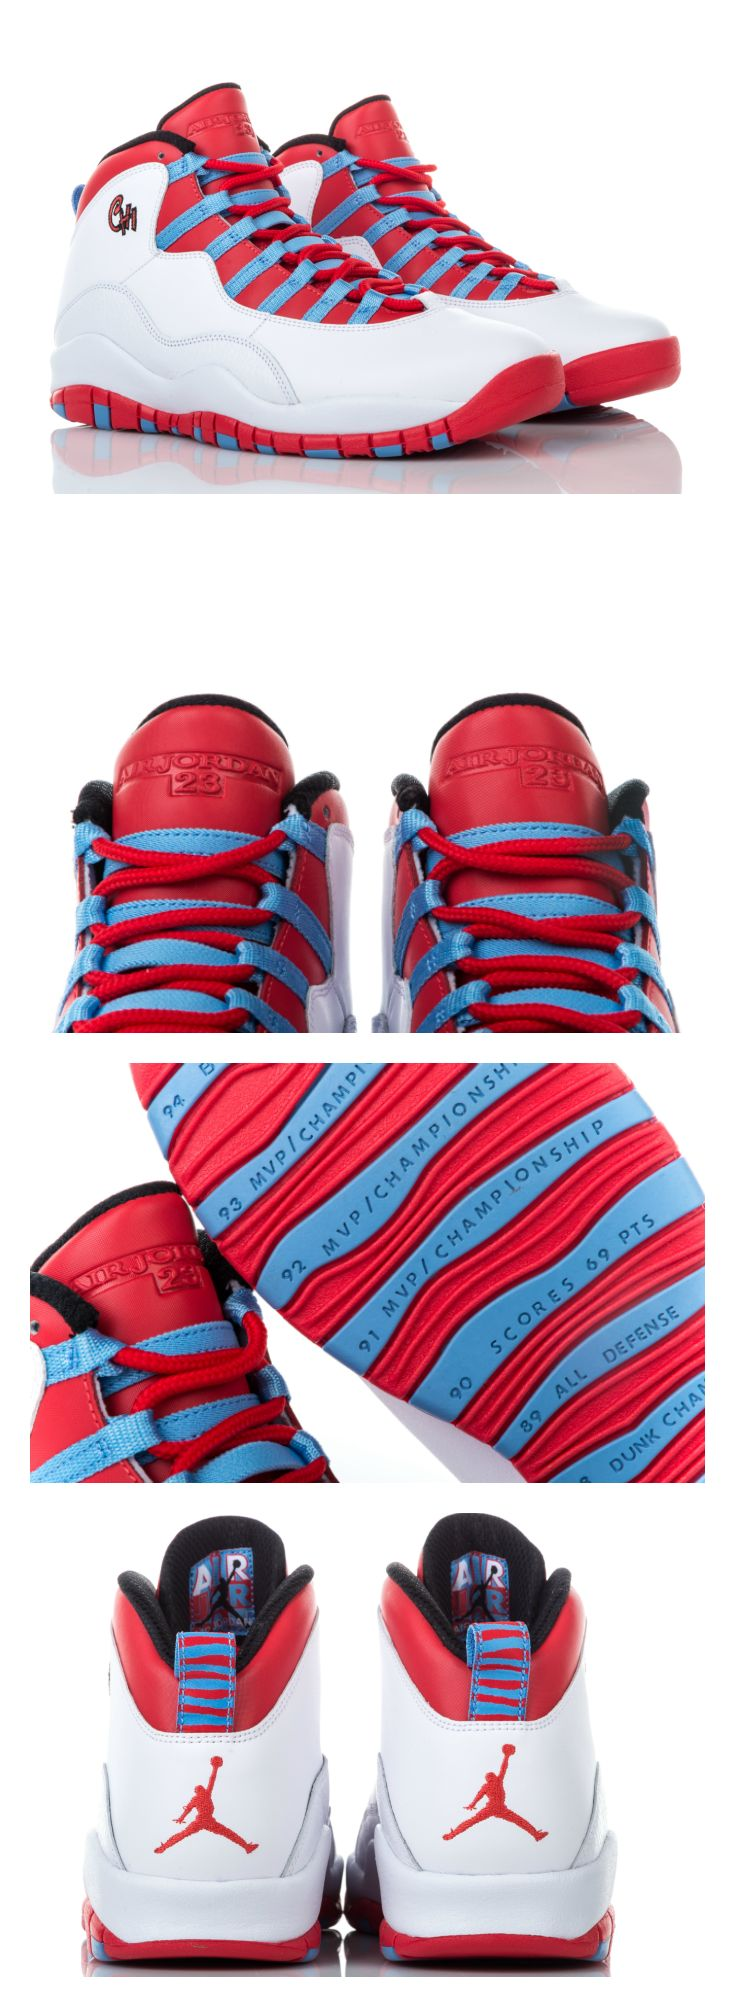 Rep the shoe that reps your city: the Jordan Retro 10 'Chicago'.